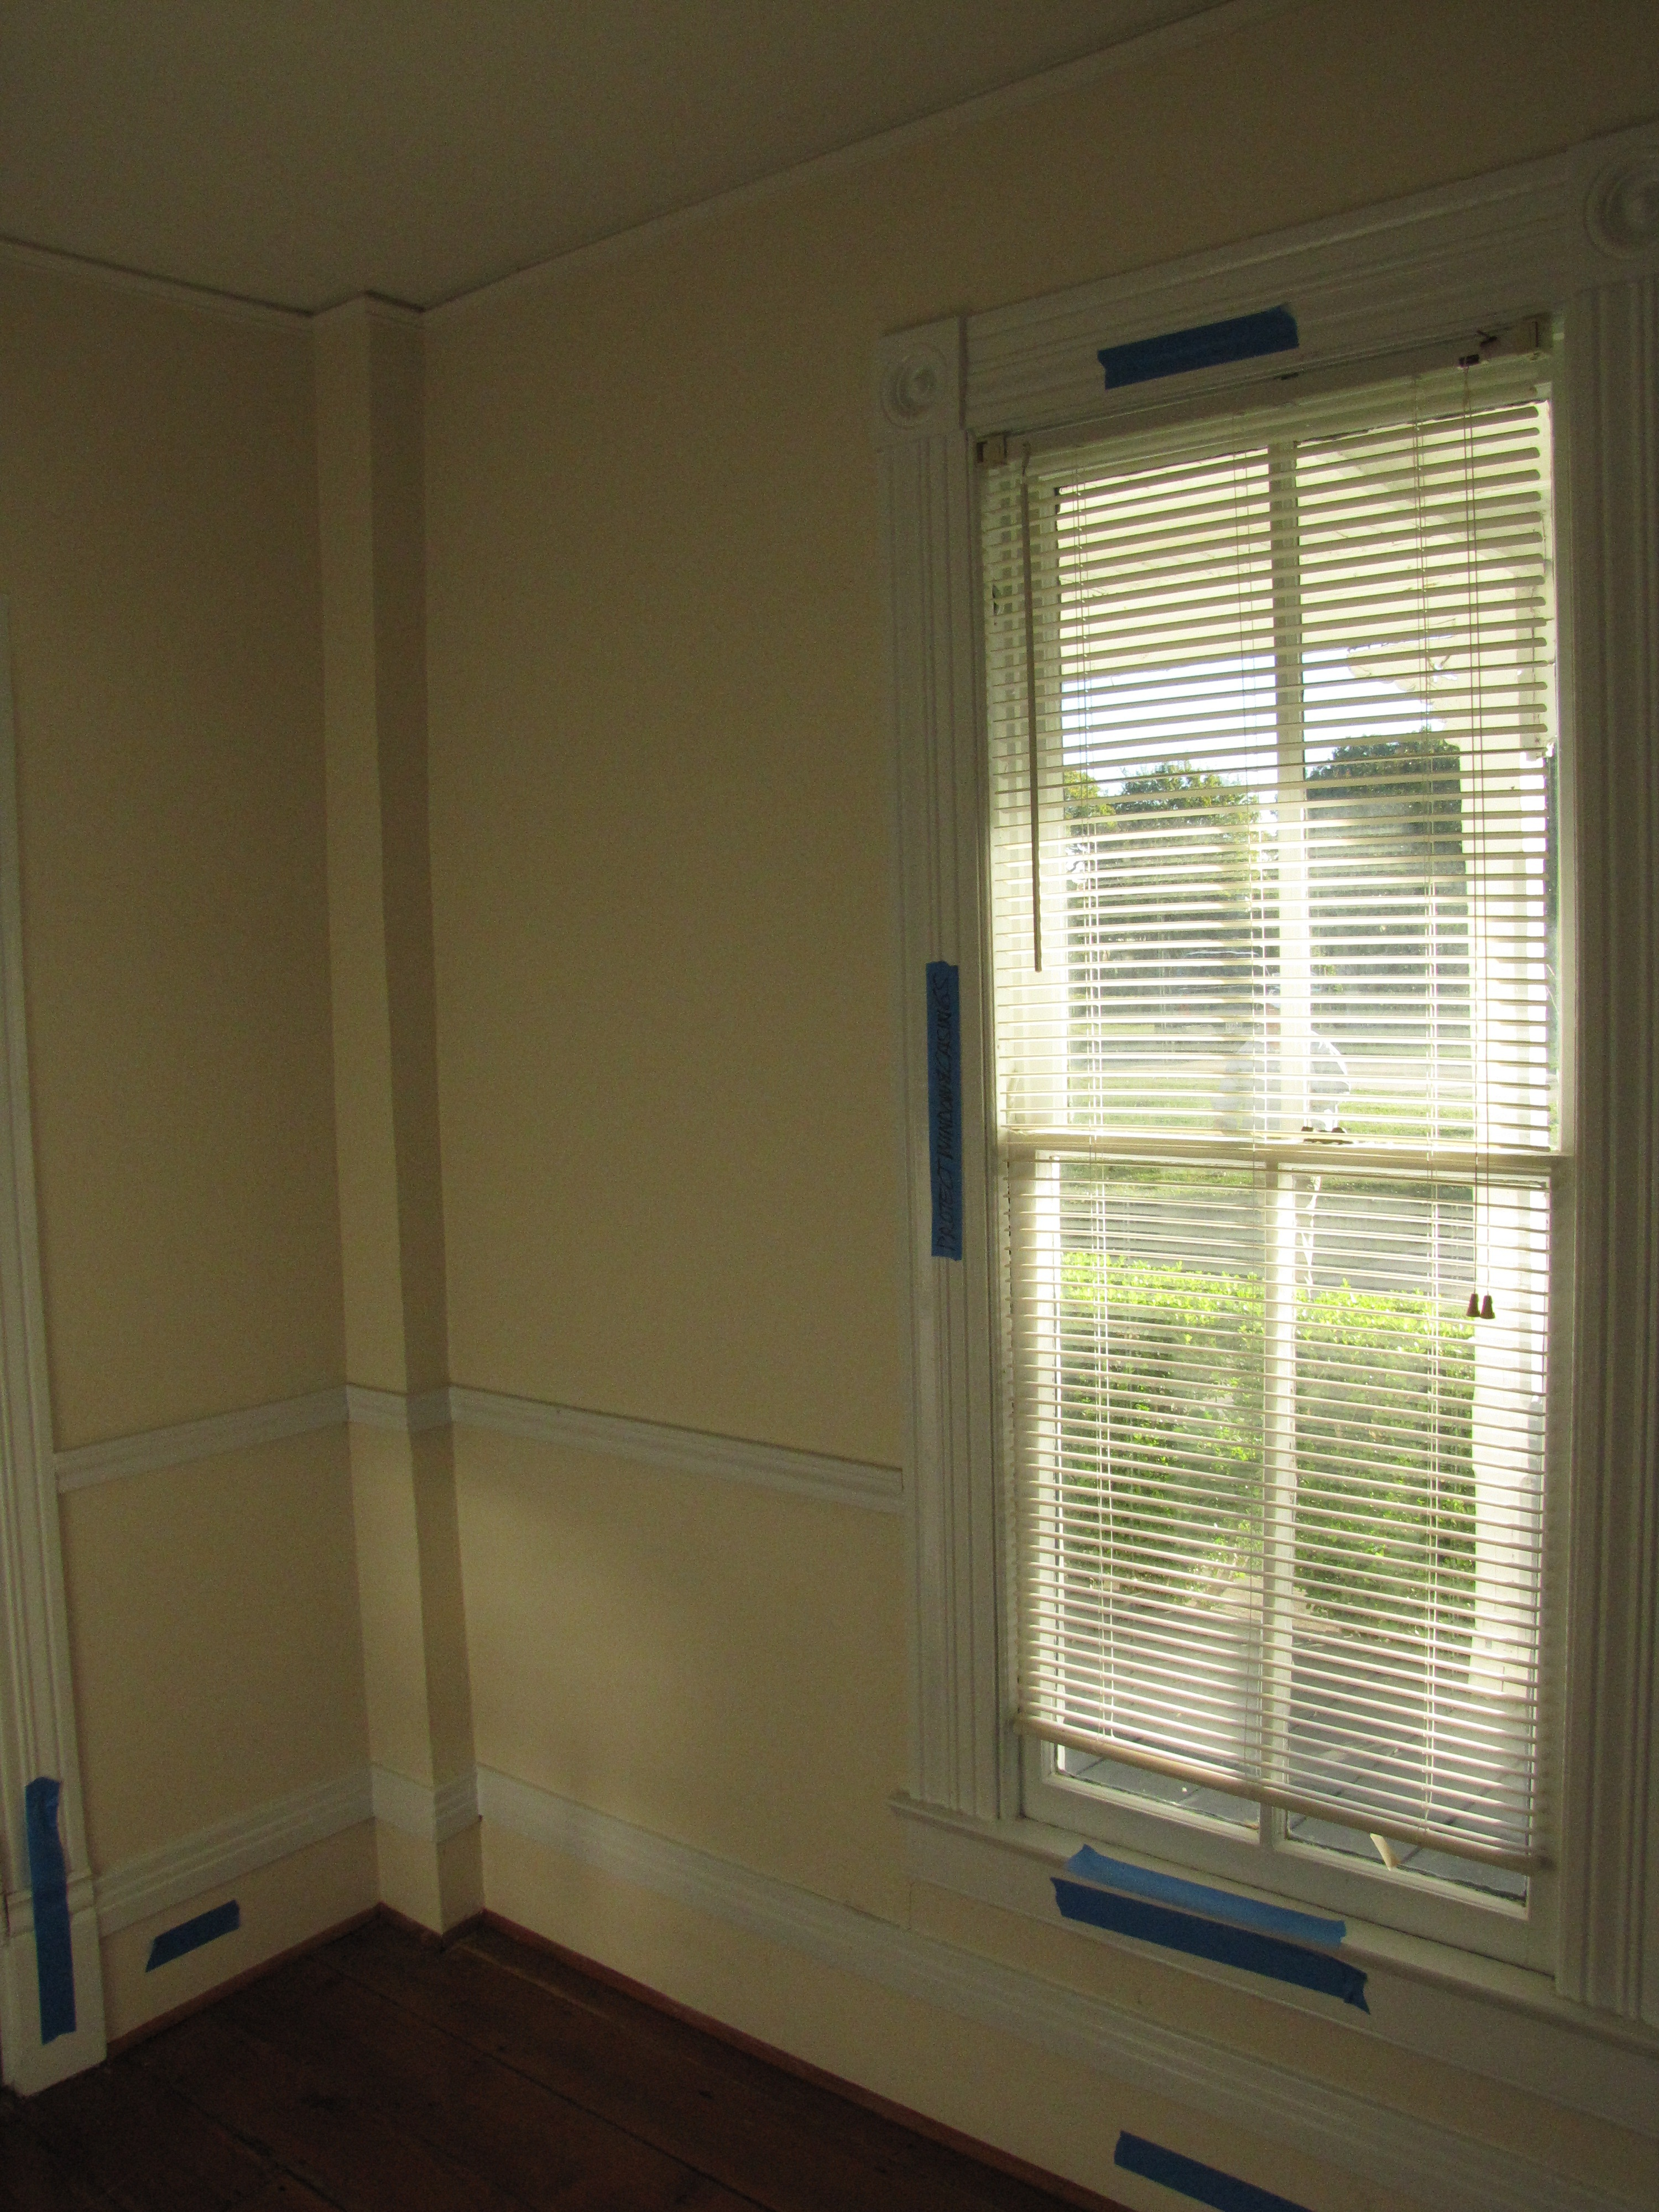 North and East Walls of Downstairs South Bedroom